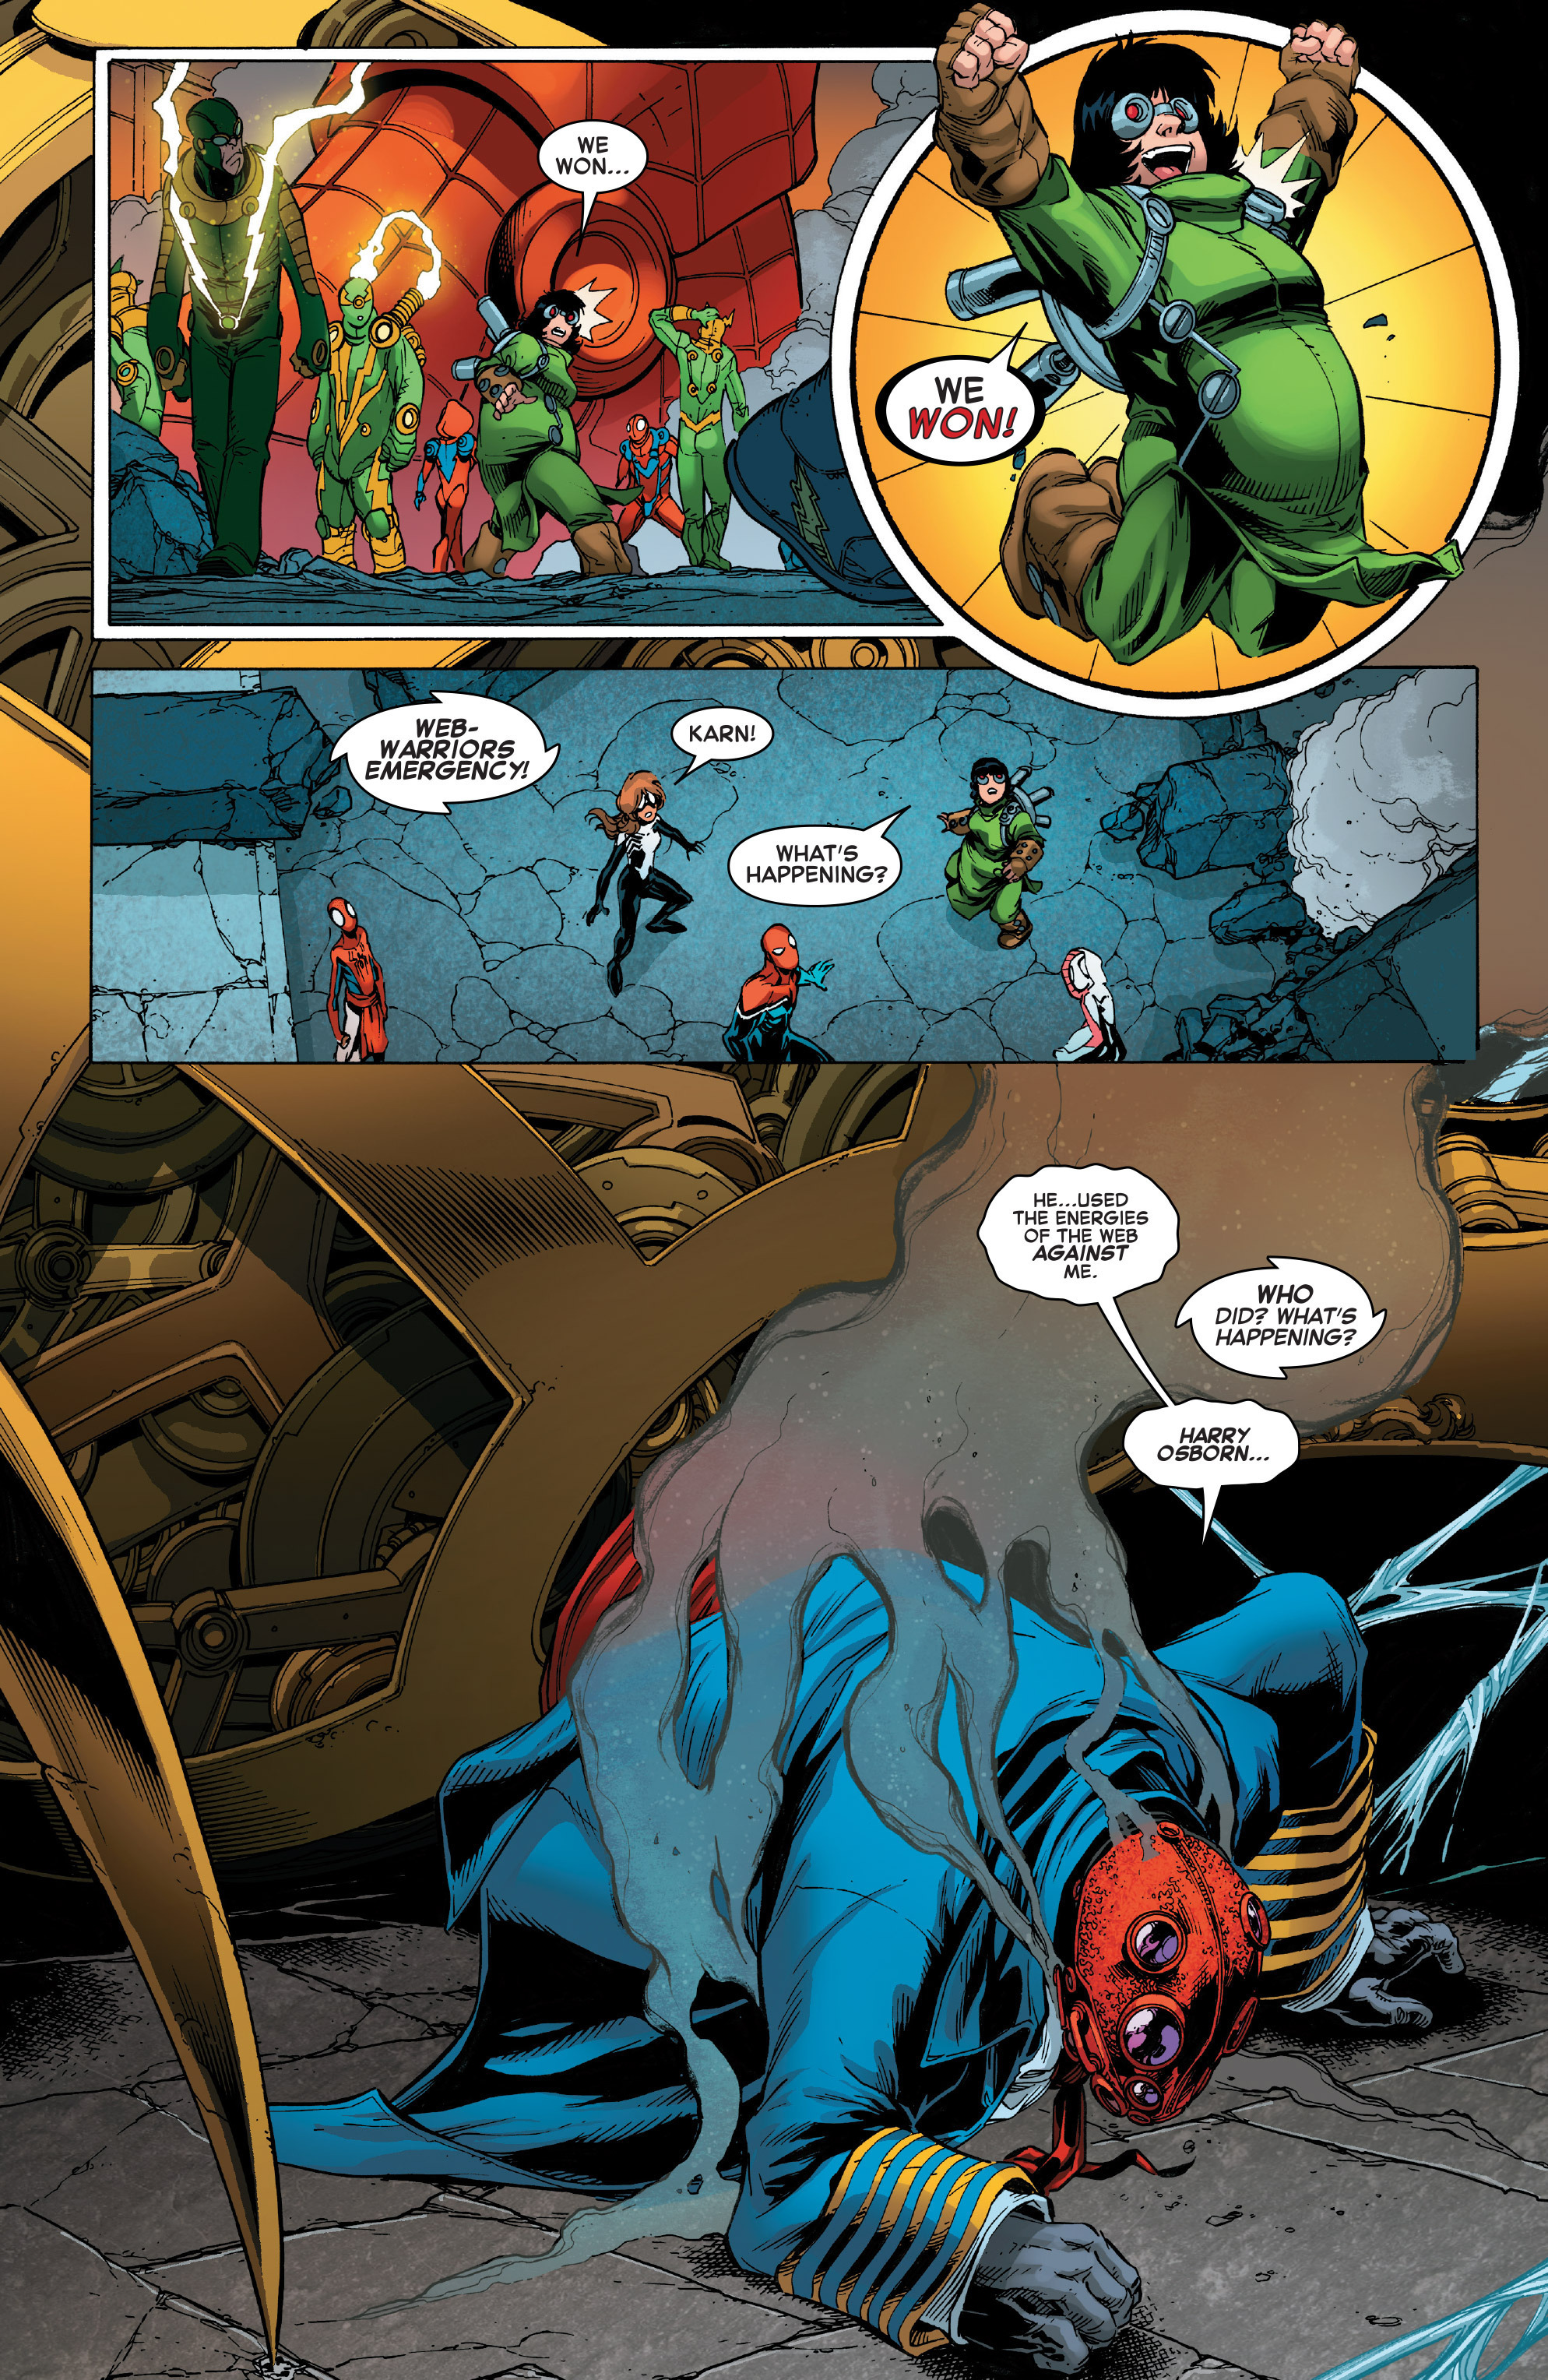 Read online Web Warriors comic -  Issue #11 - 13